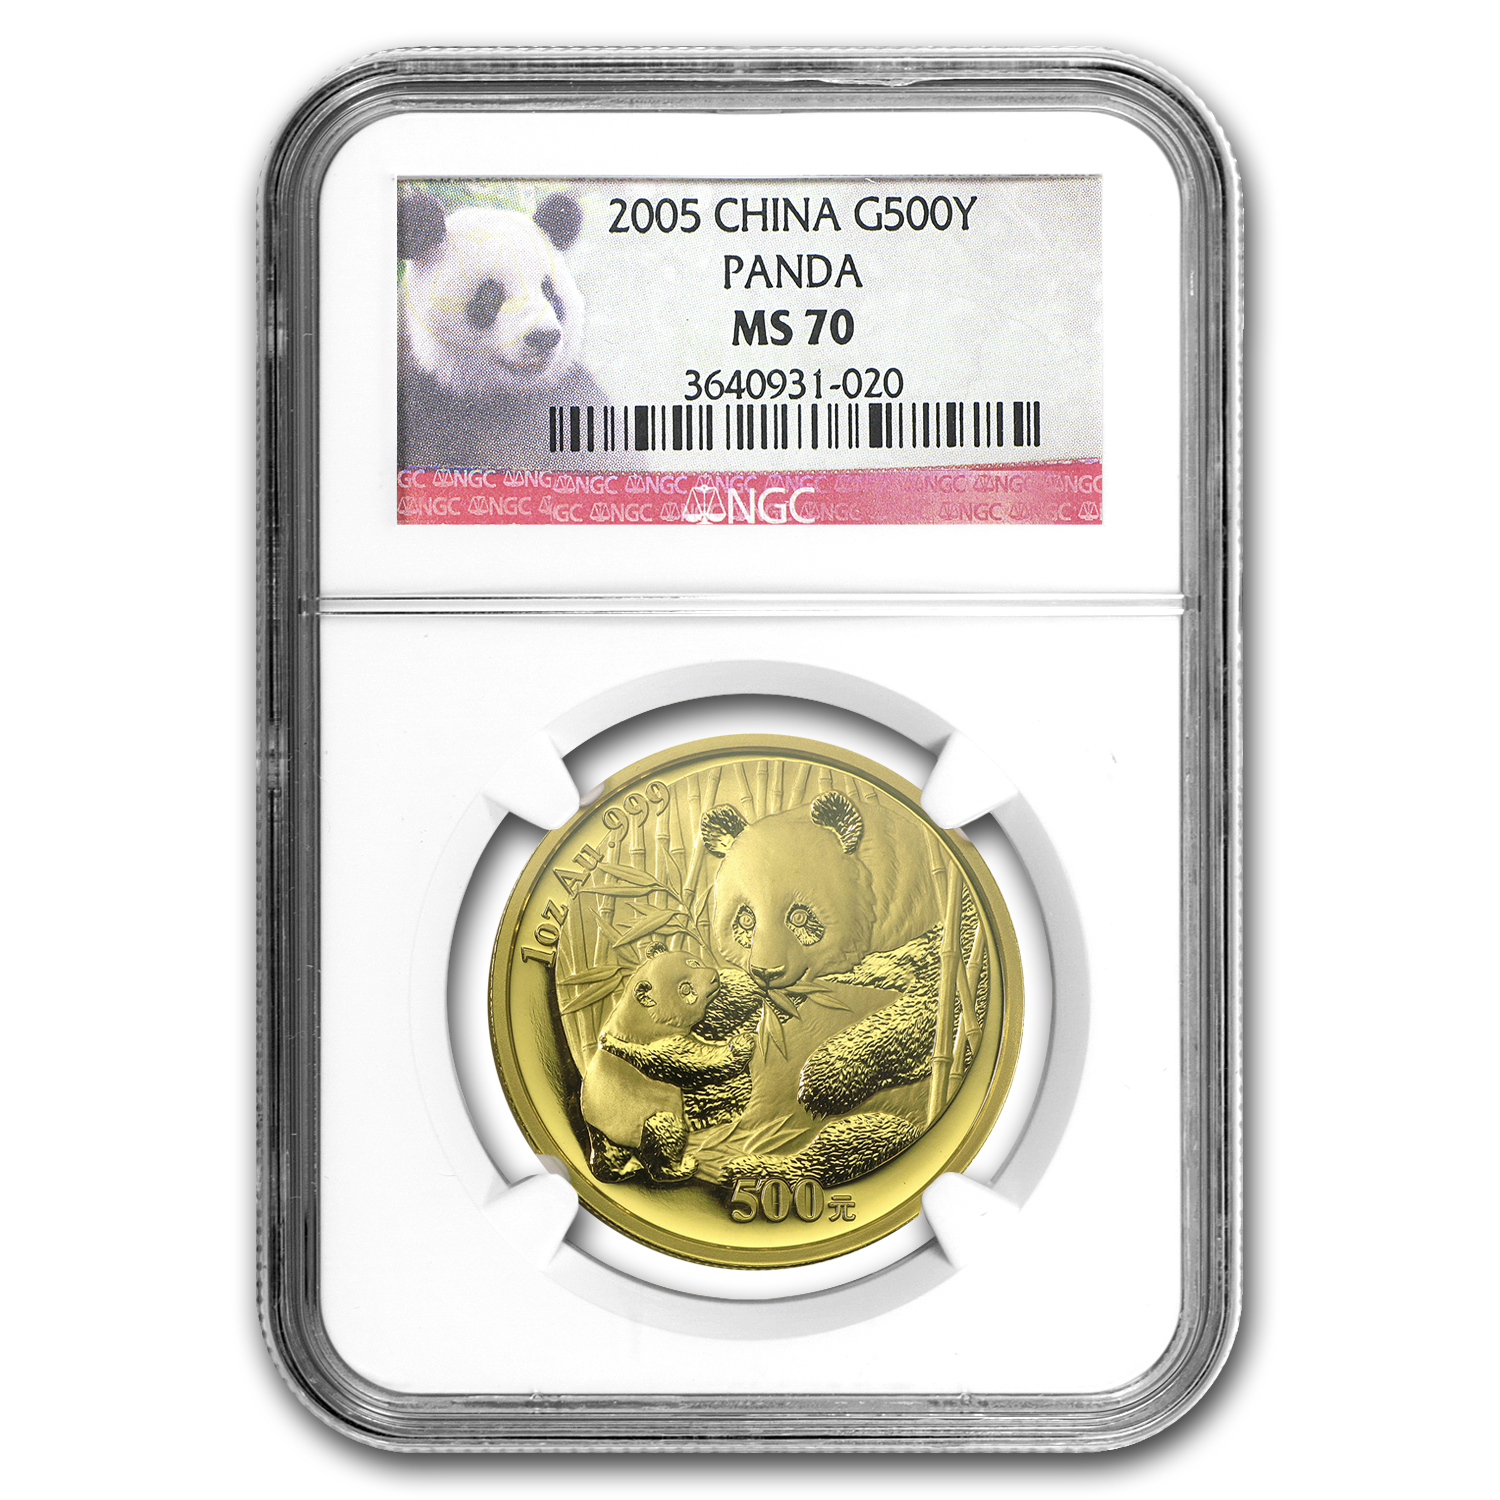 2005 China 1 oz Gold Panda MS-70 NGC